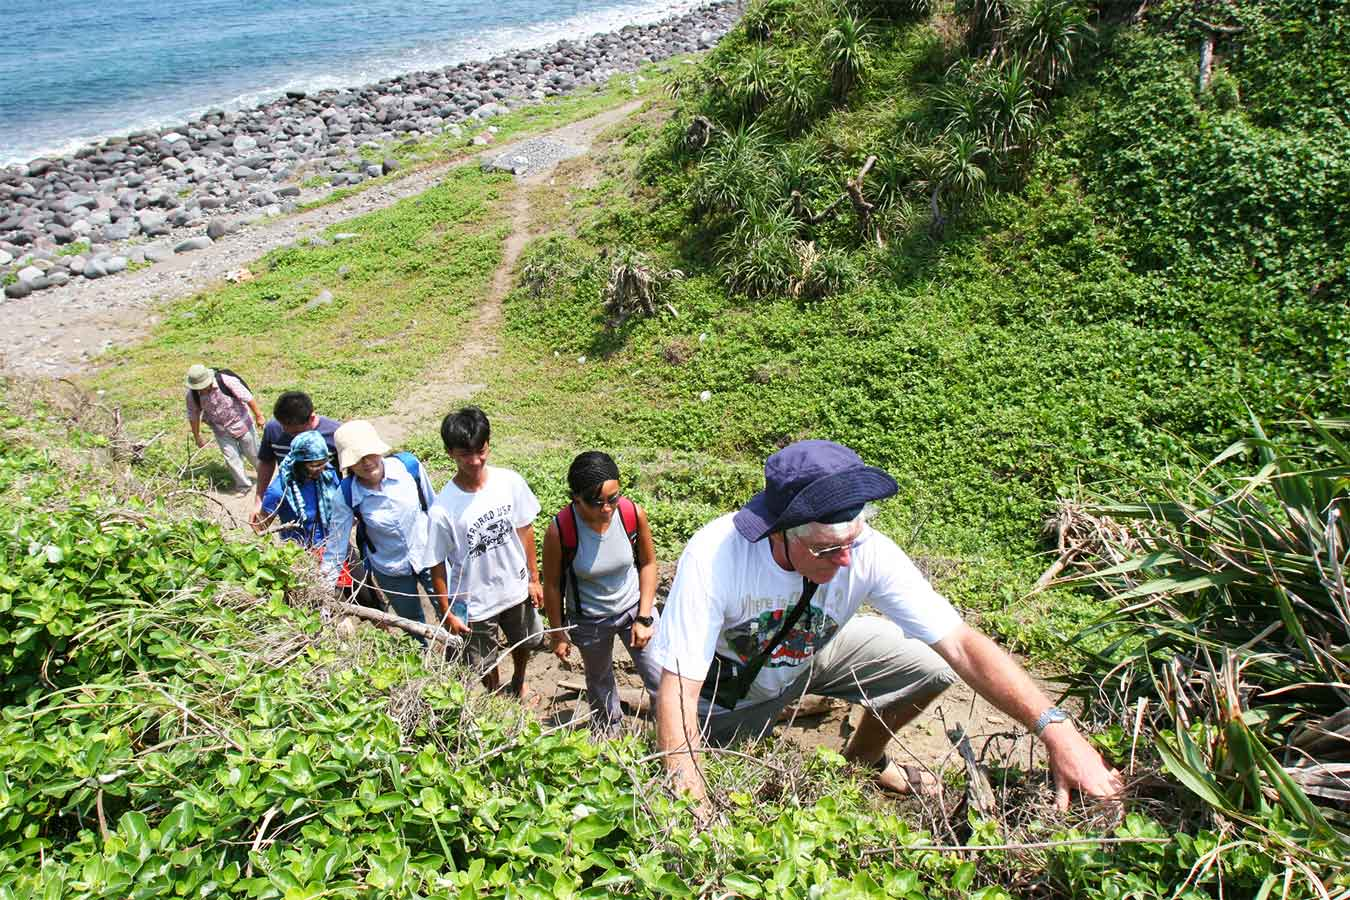 Peter Bellwood Leading the team - Batanes Islands - Austronesian People - Steven Andrew Martin